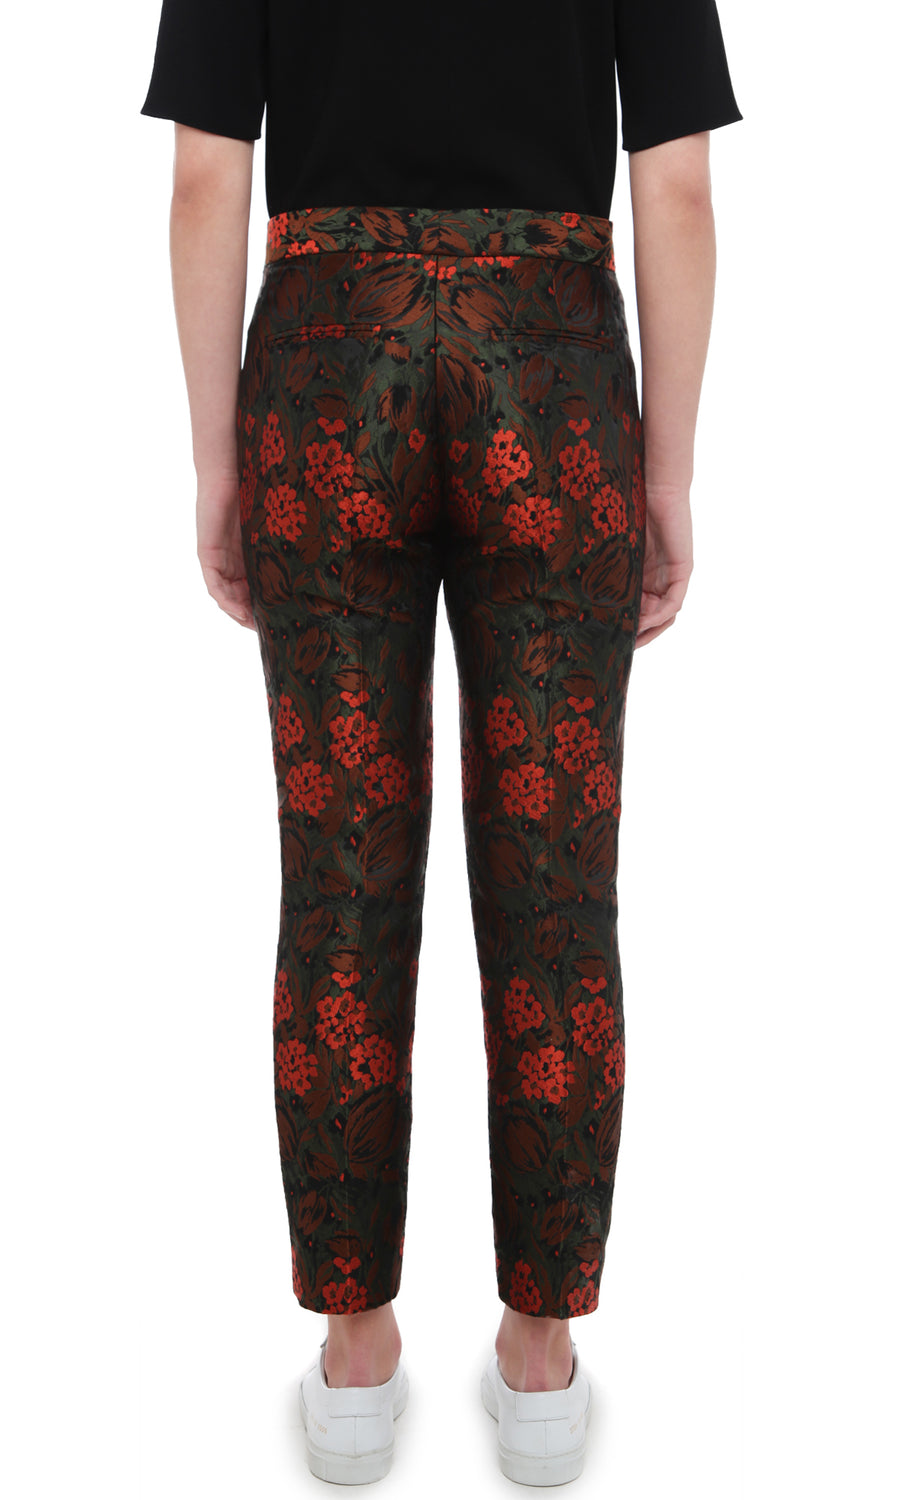 FRANKLIN FOREST TROUSER